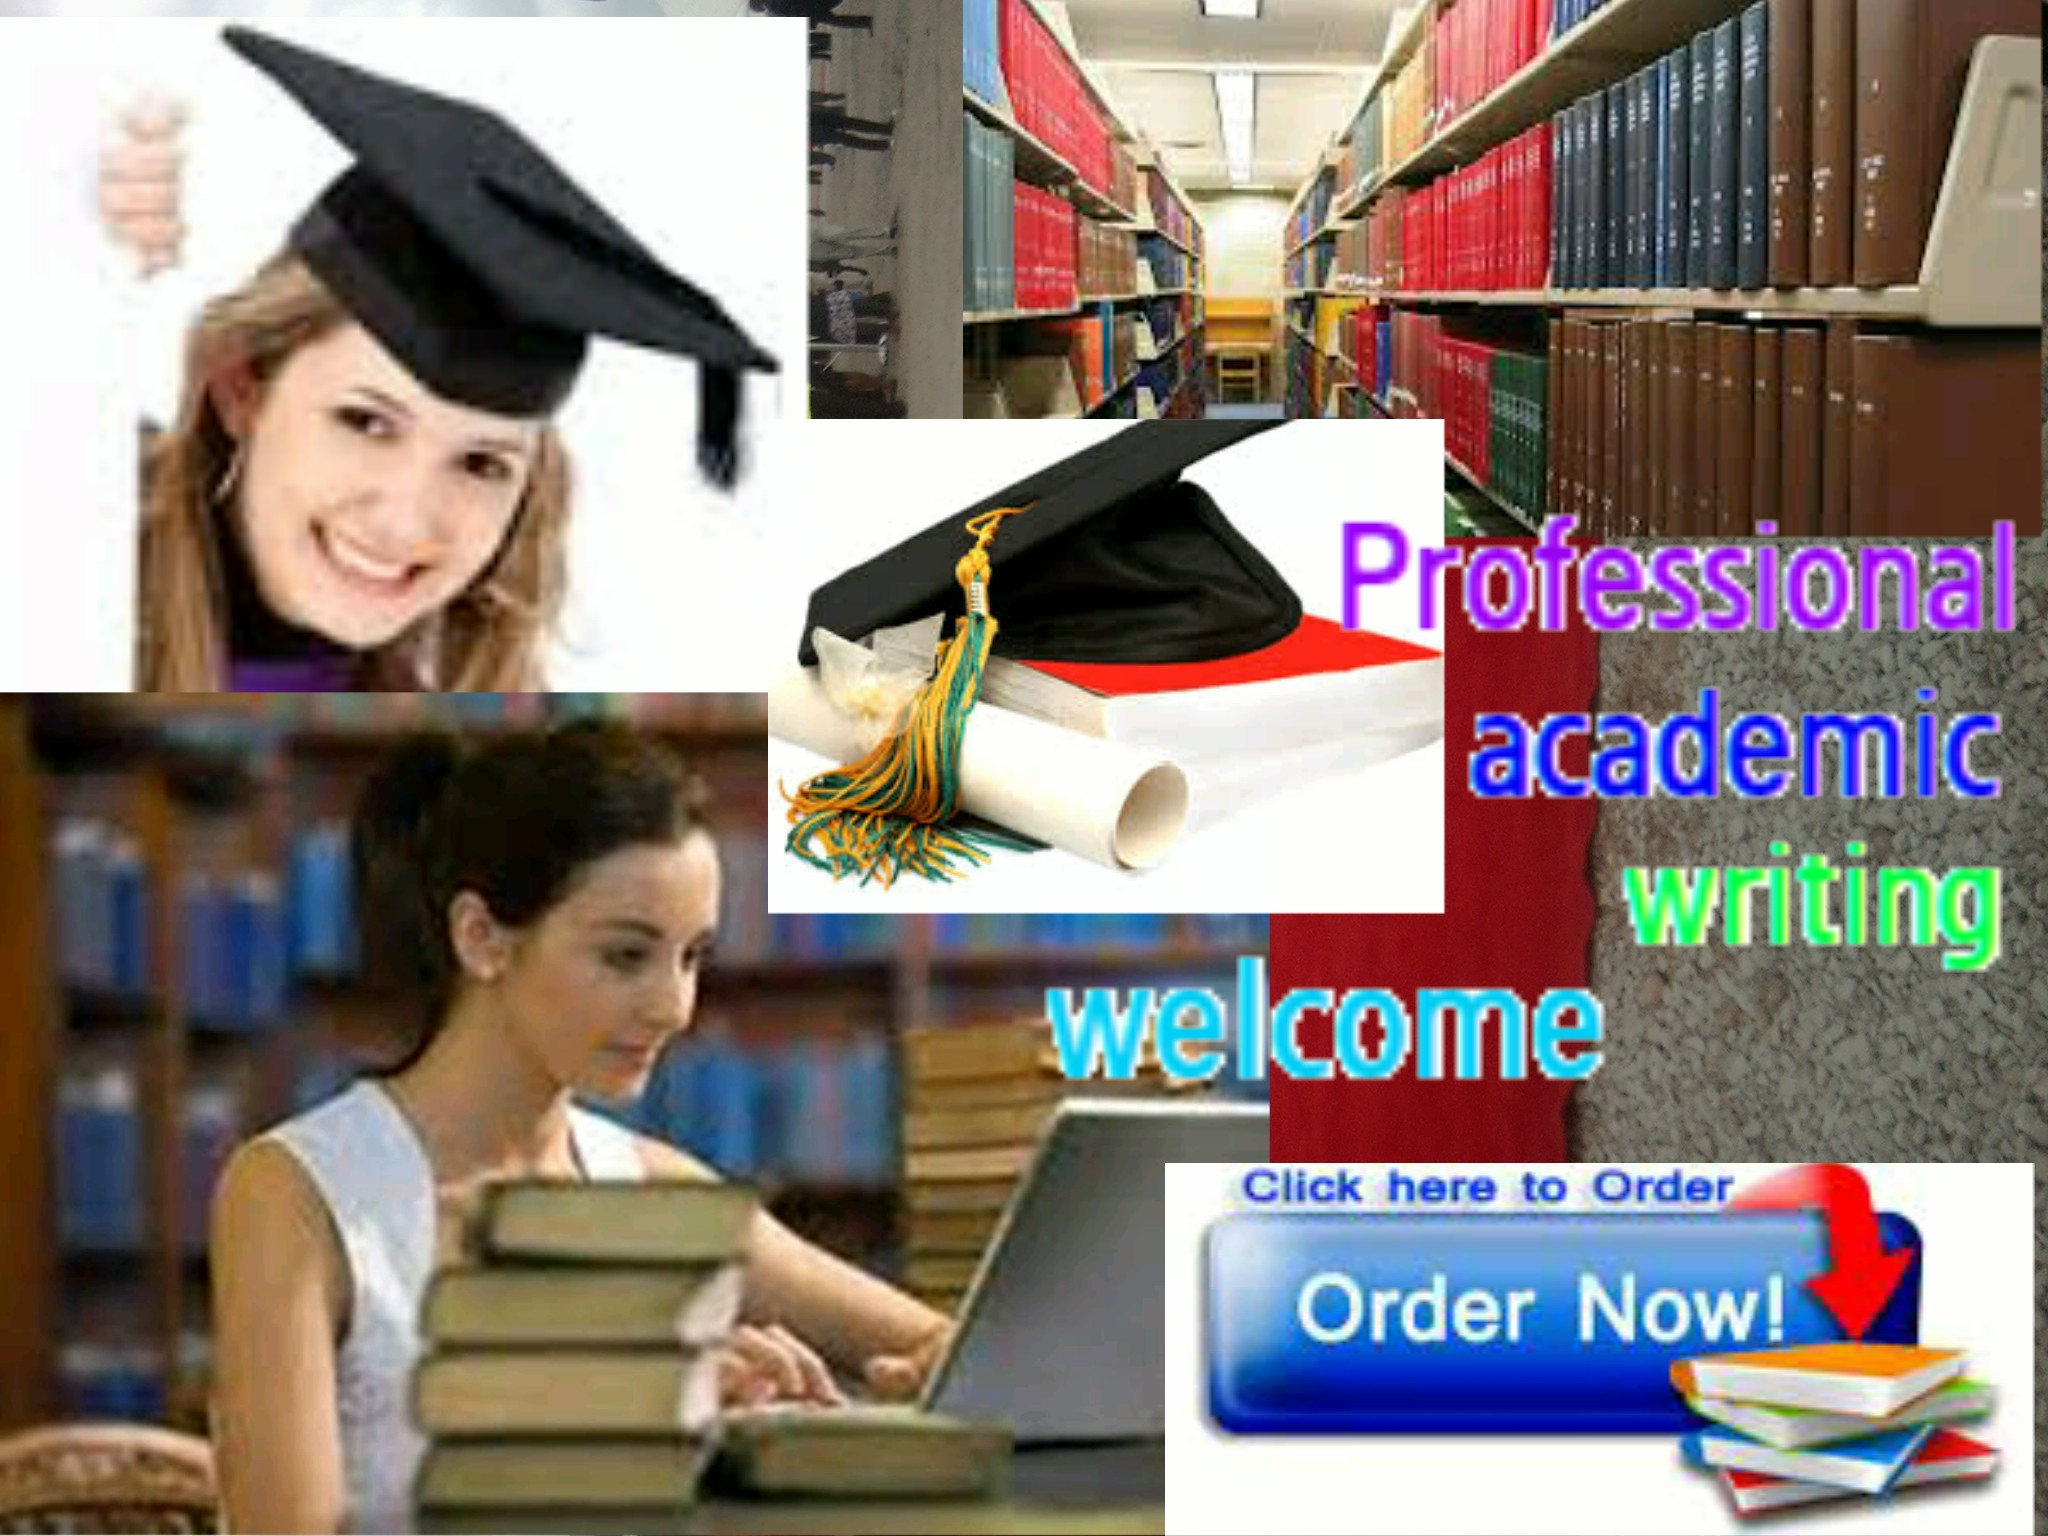 write a highly professional academic essay formatted either in MLA, Chicago, Turabian, APA or Harvard